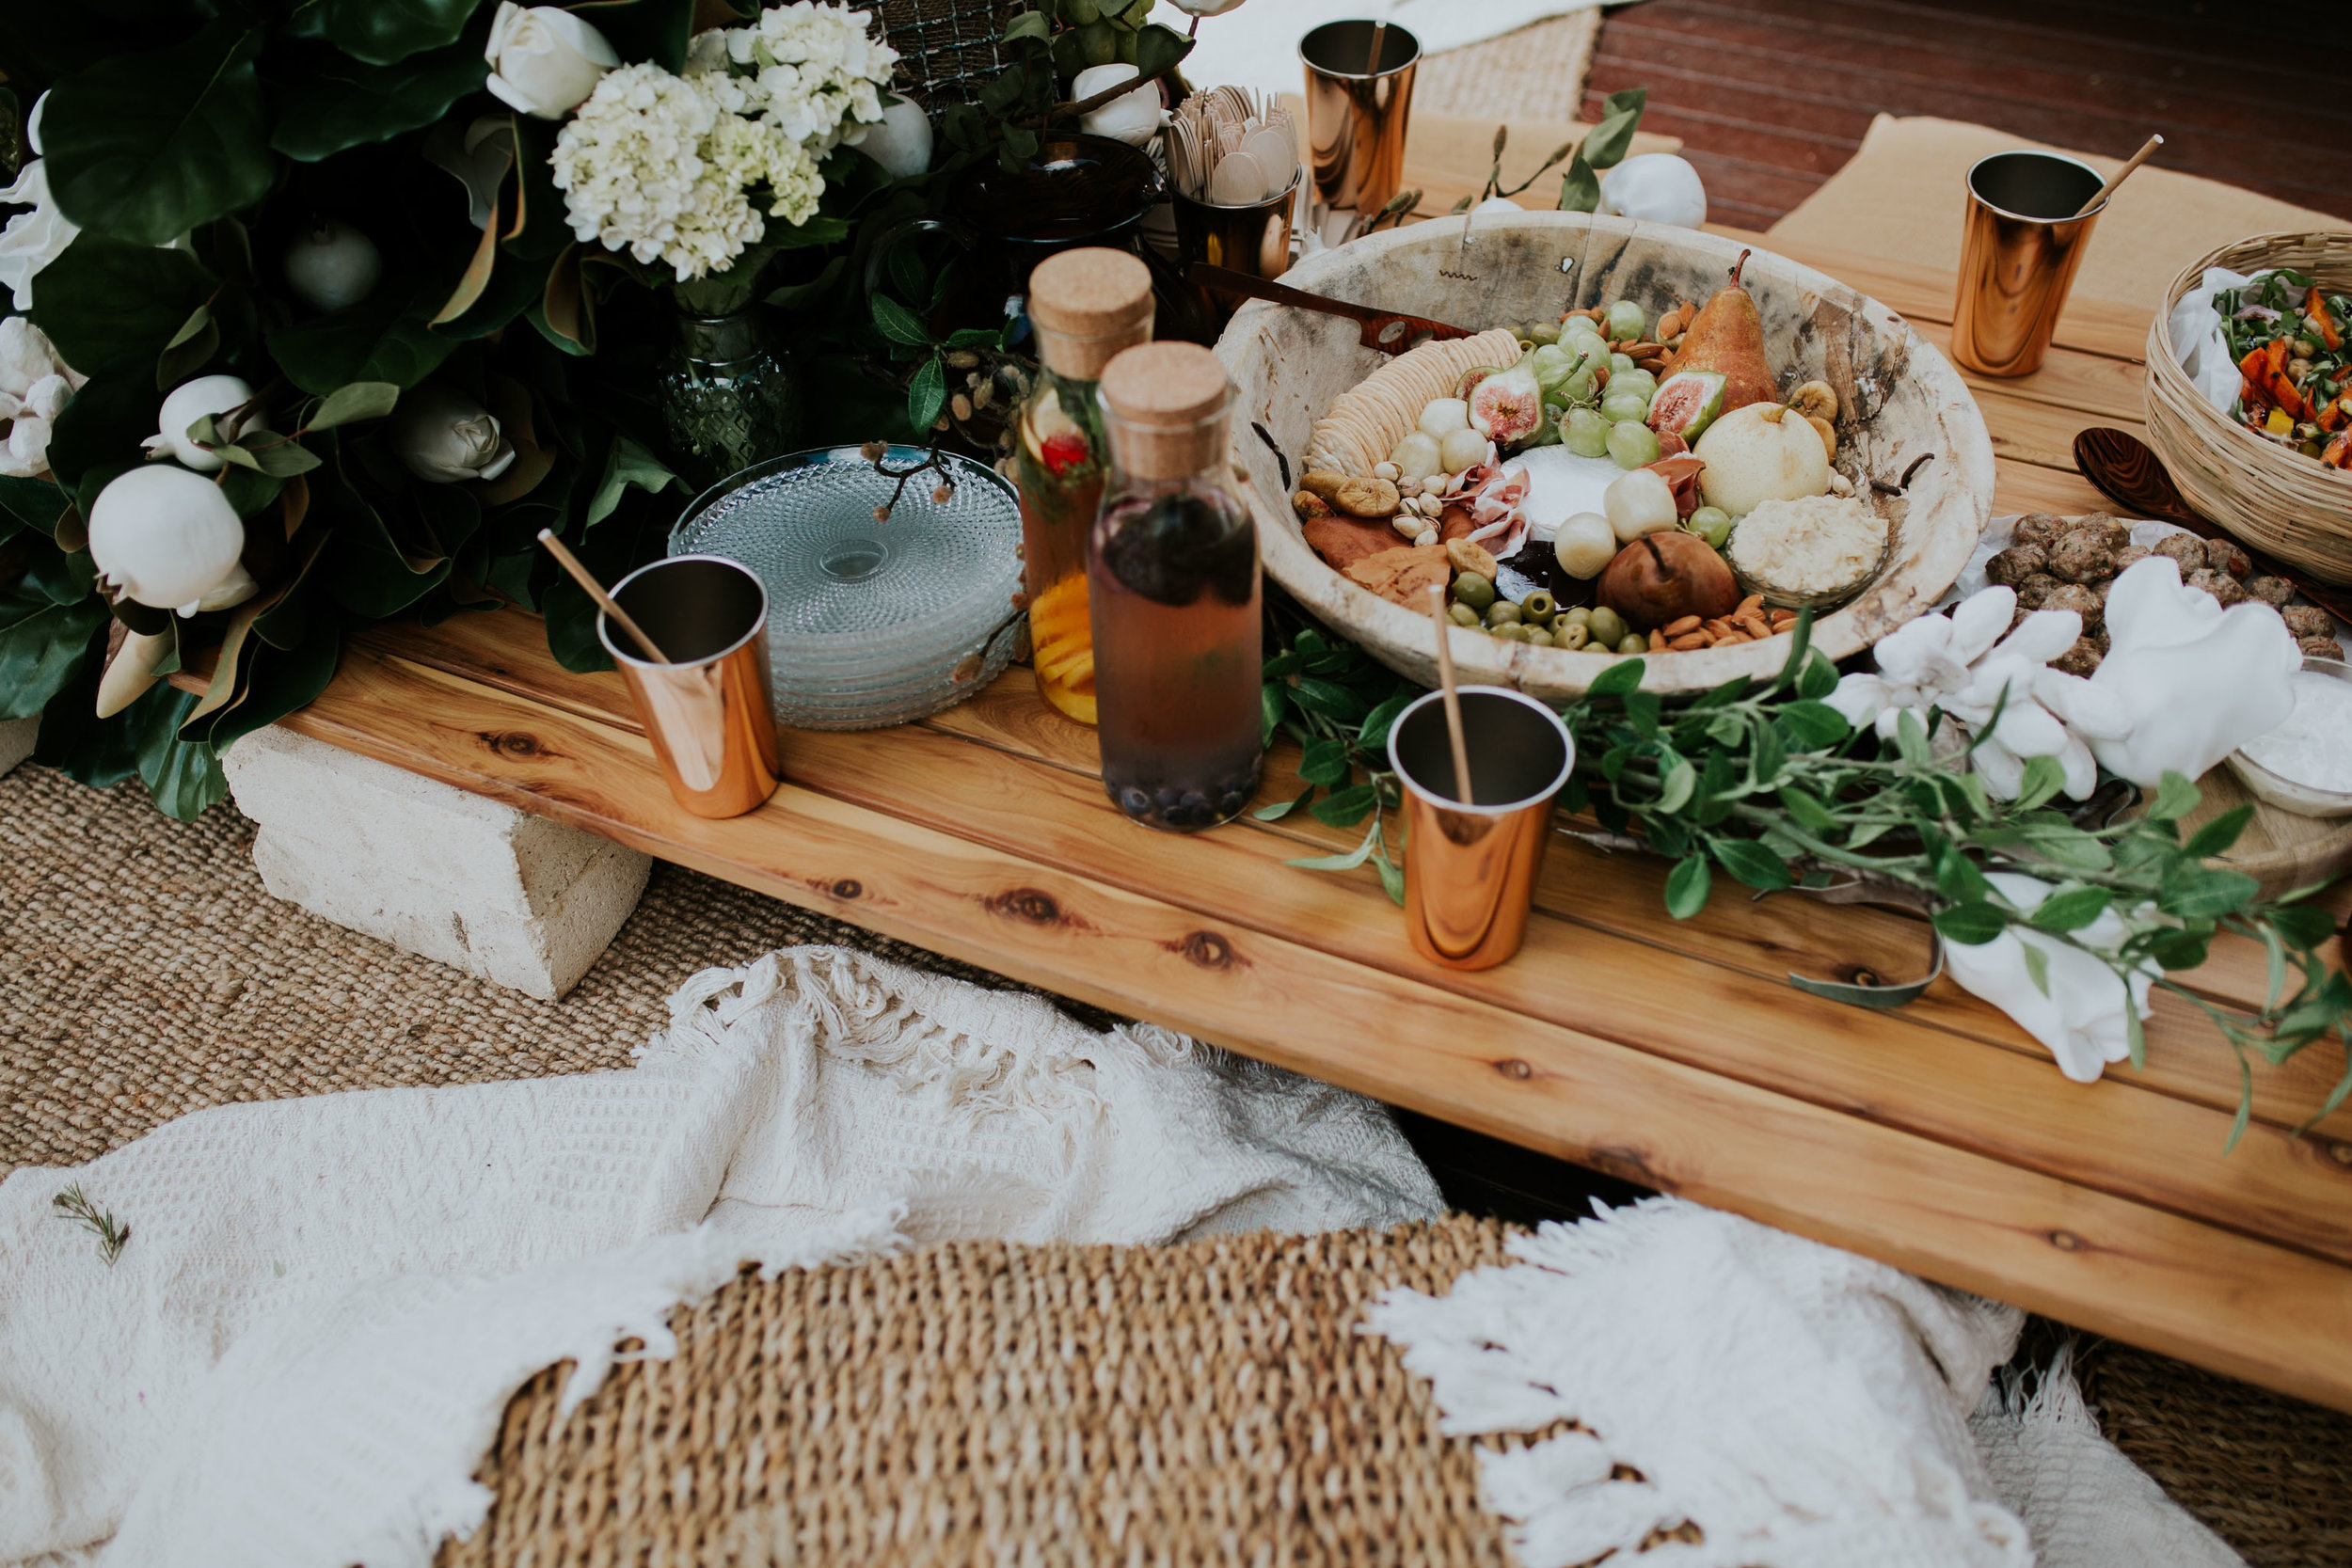 stylish-Baby-Shower-The-collectors-nest-11.jpg